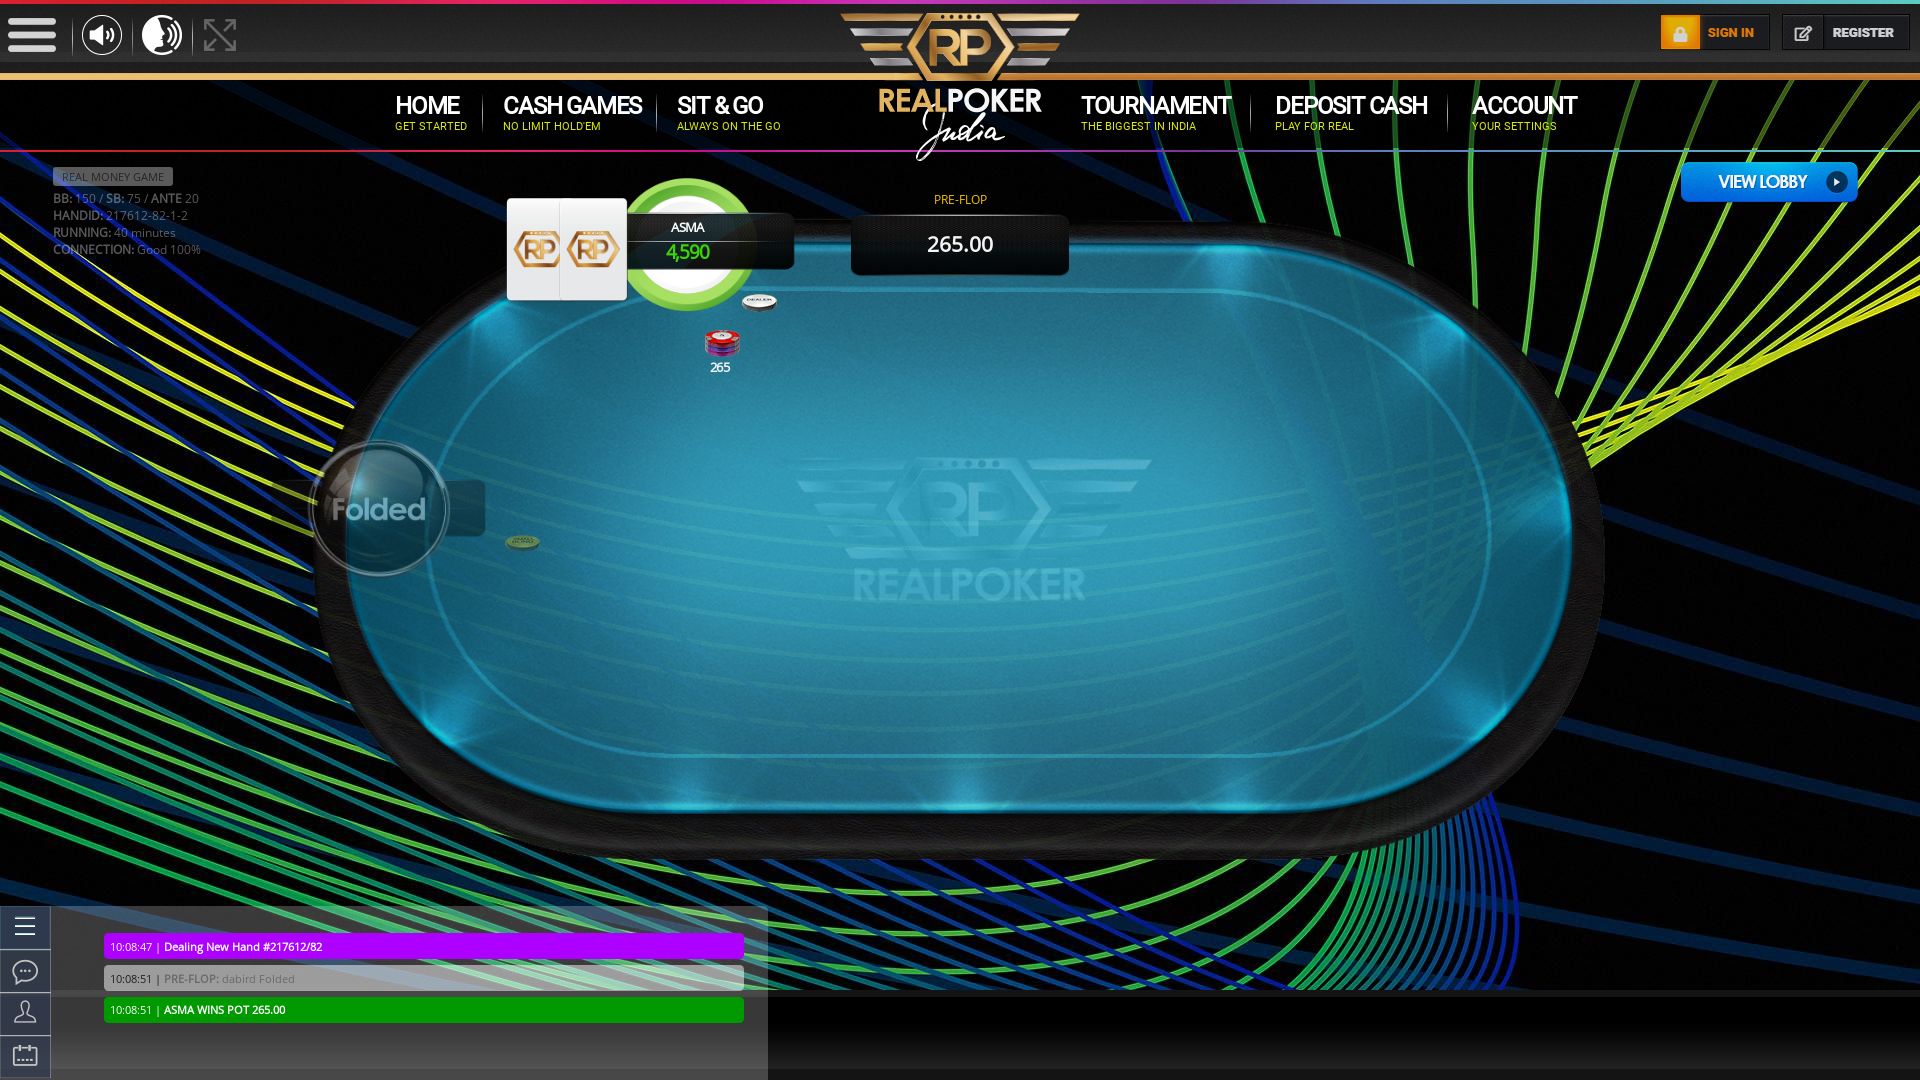 Indian online poker on a 10 player table in the 40th minute match up